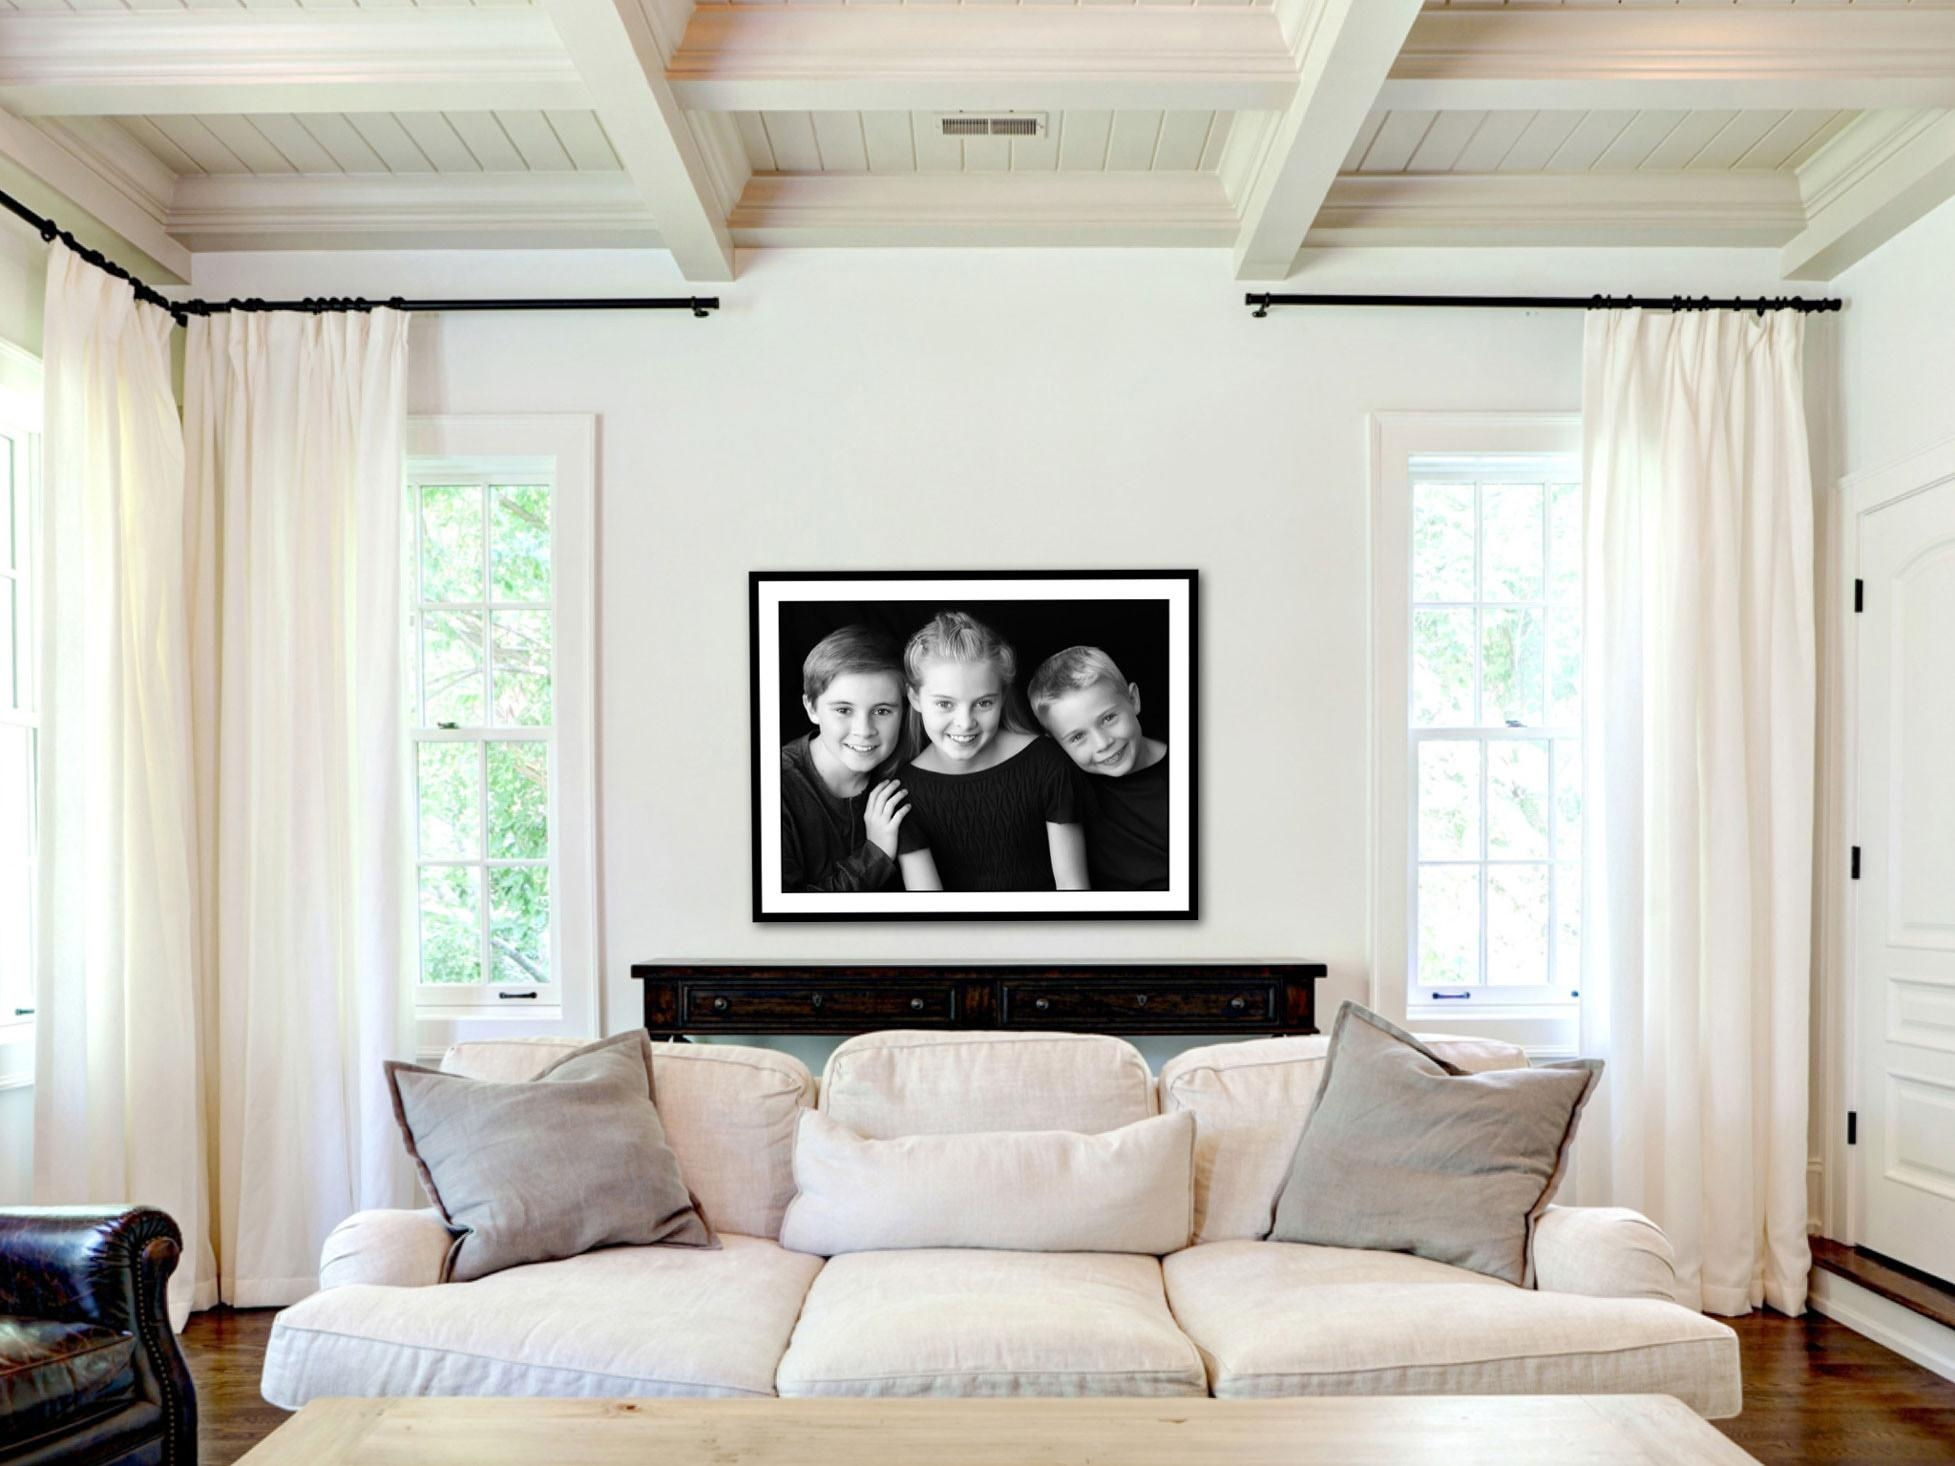 Black And White Photography Wall Art Ideas – With Regard To Photography Wall Art (Image 11 of 20)